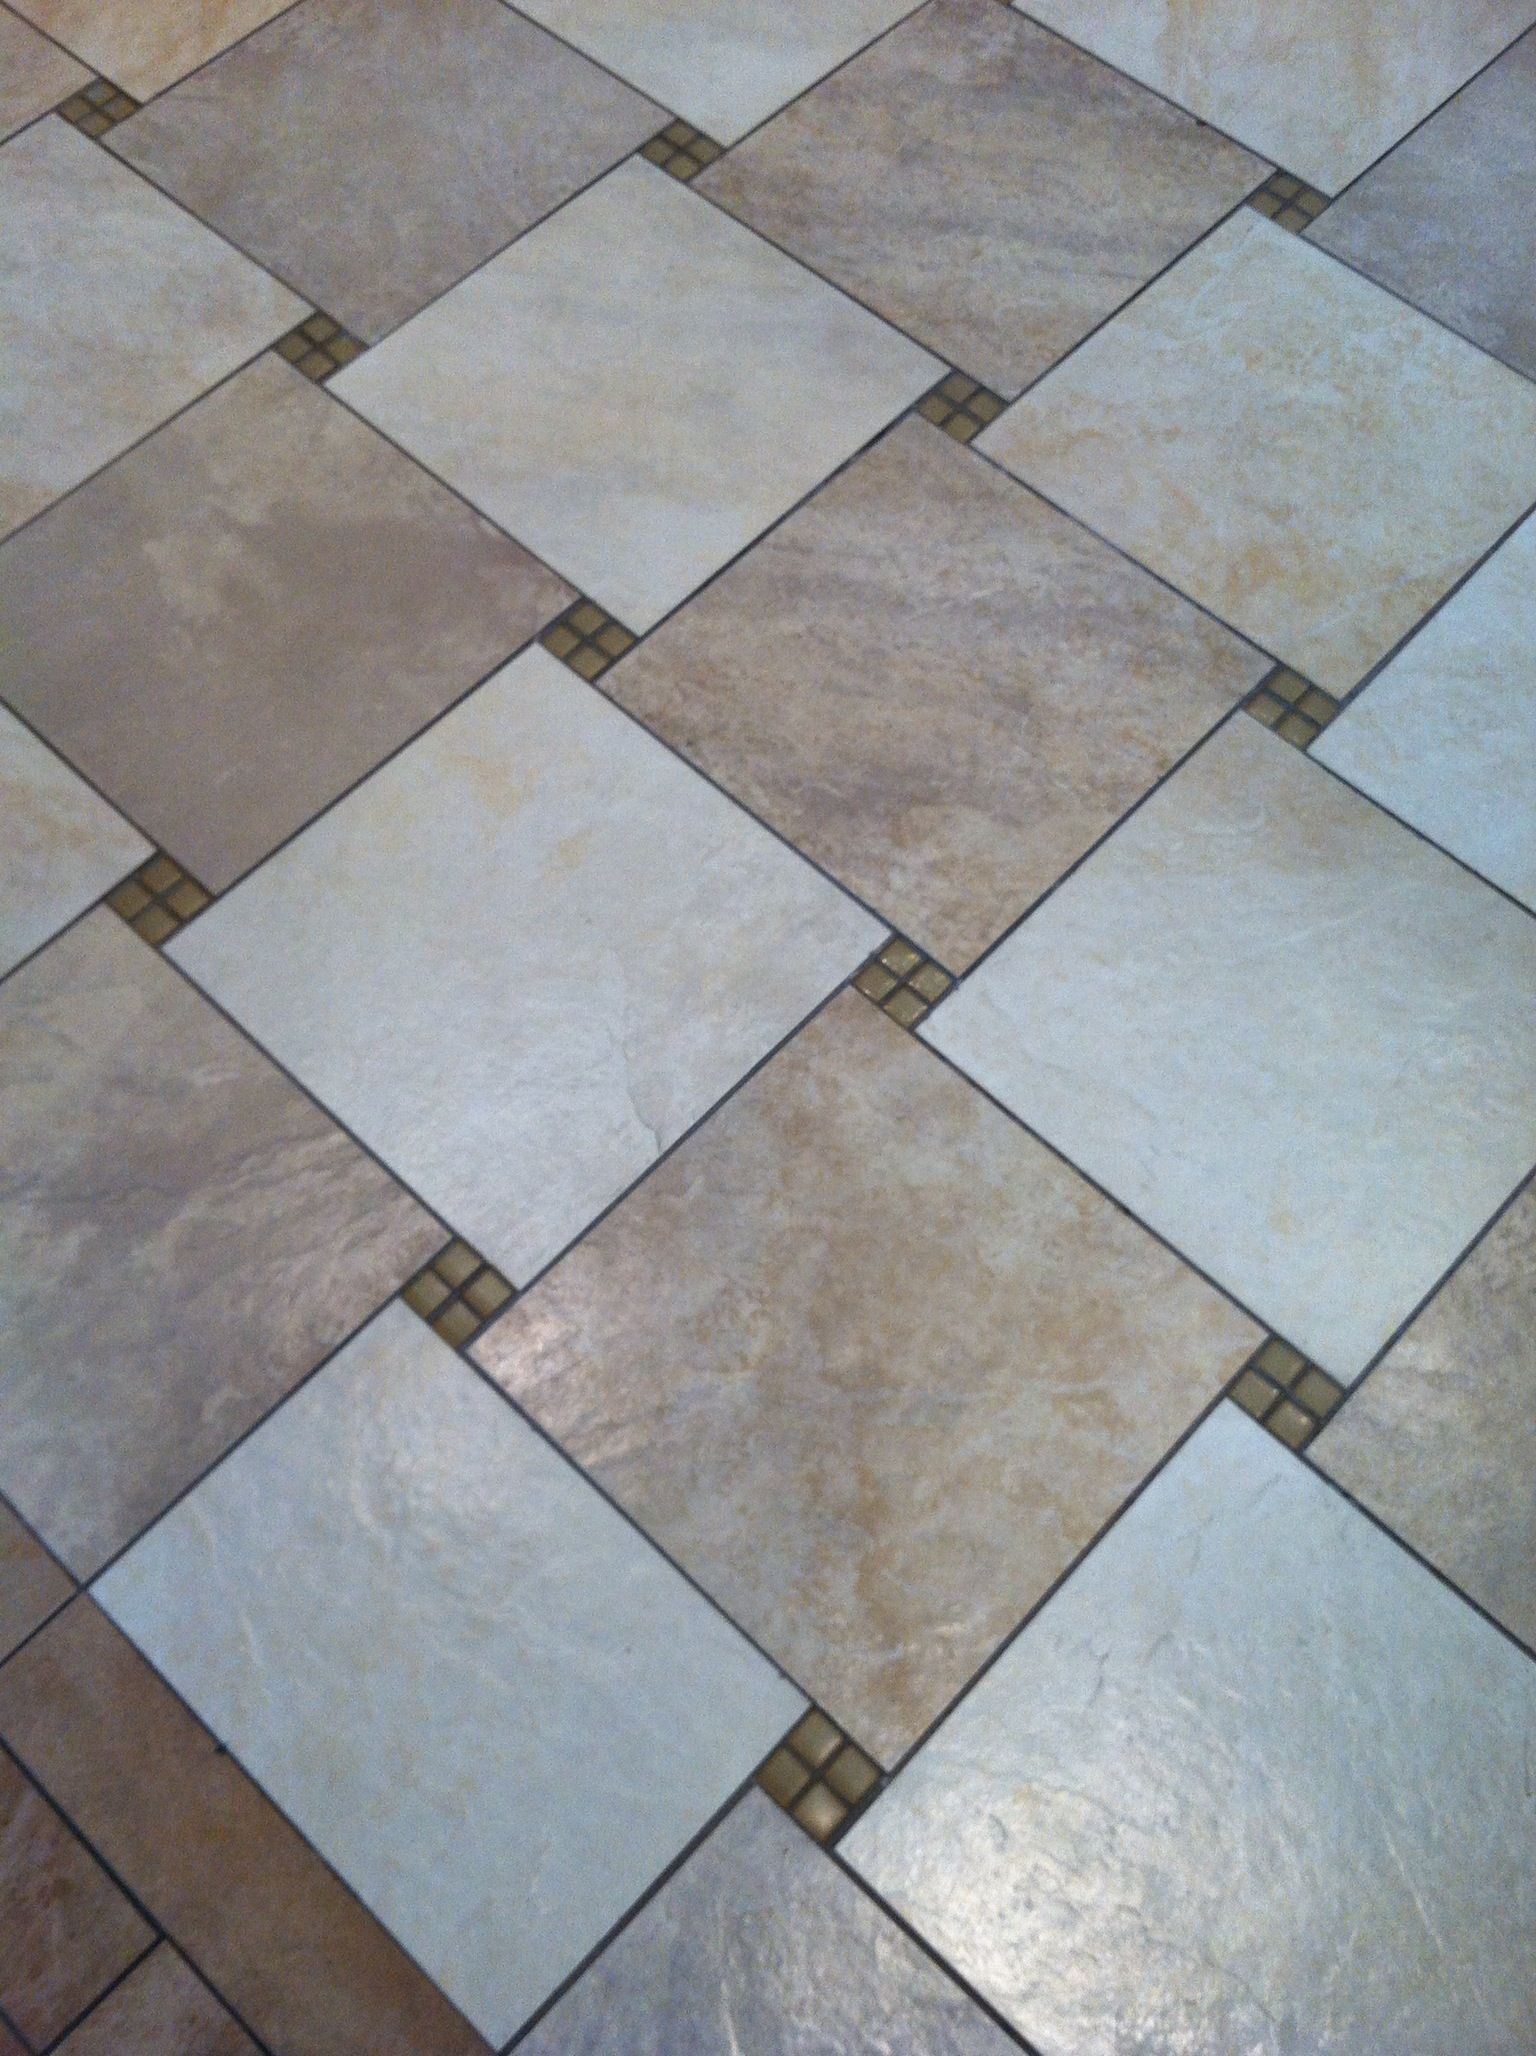 Floor Tile Designs Ideas To Enhance Your Floor Appearance: Floor Tile Pattern Makes A Change From The Norm